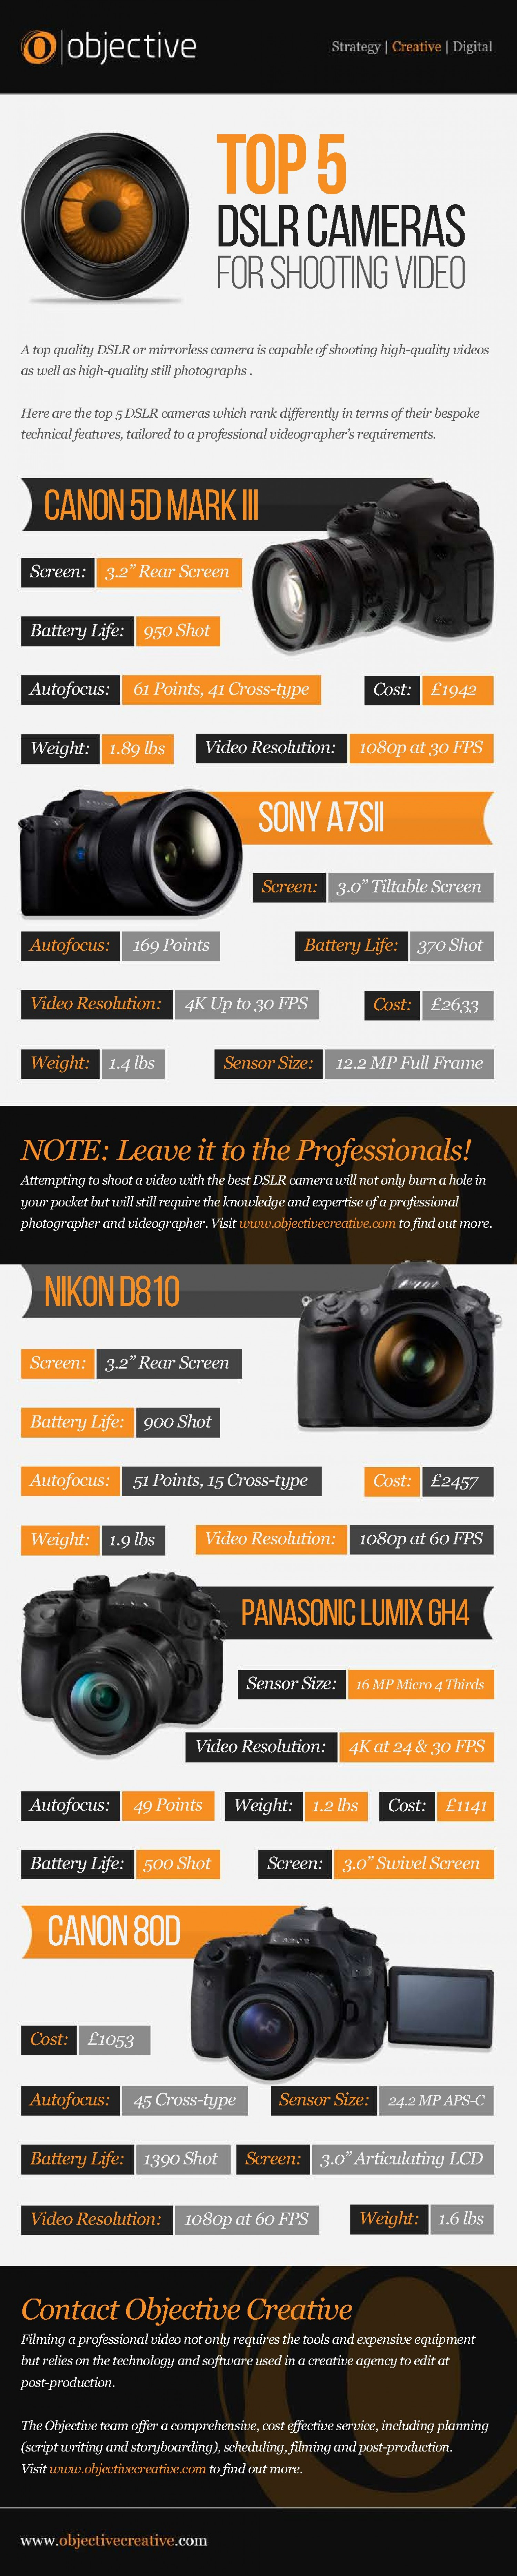 The Top 5 DSLR Cameras For Video Infographic